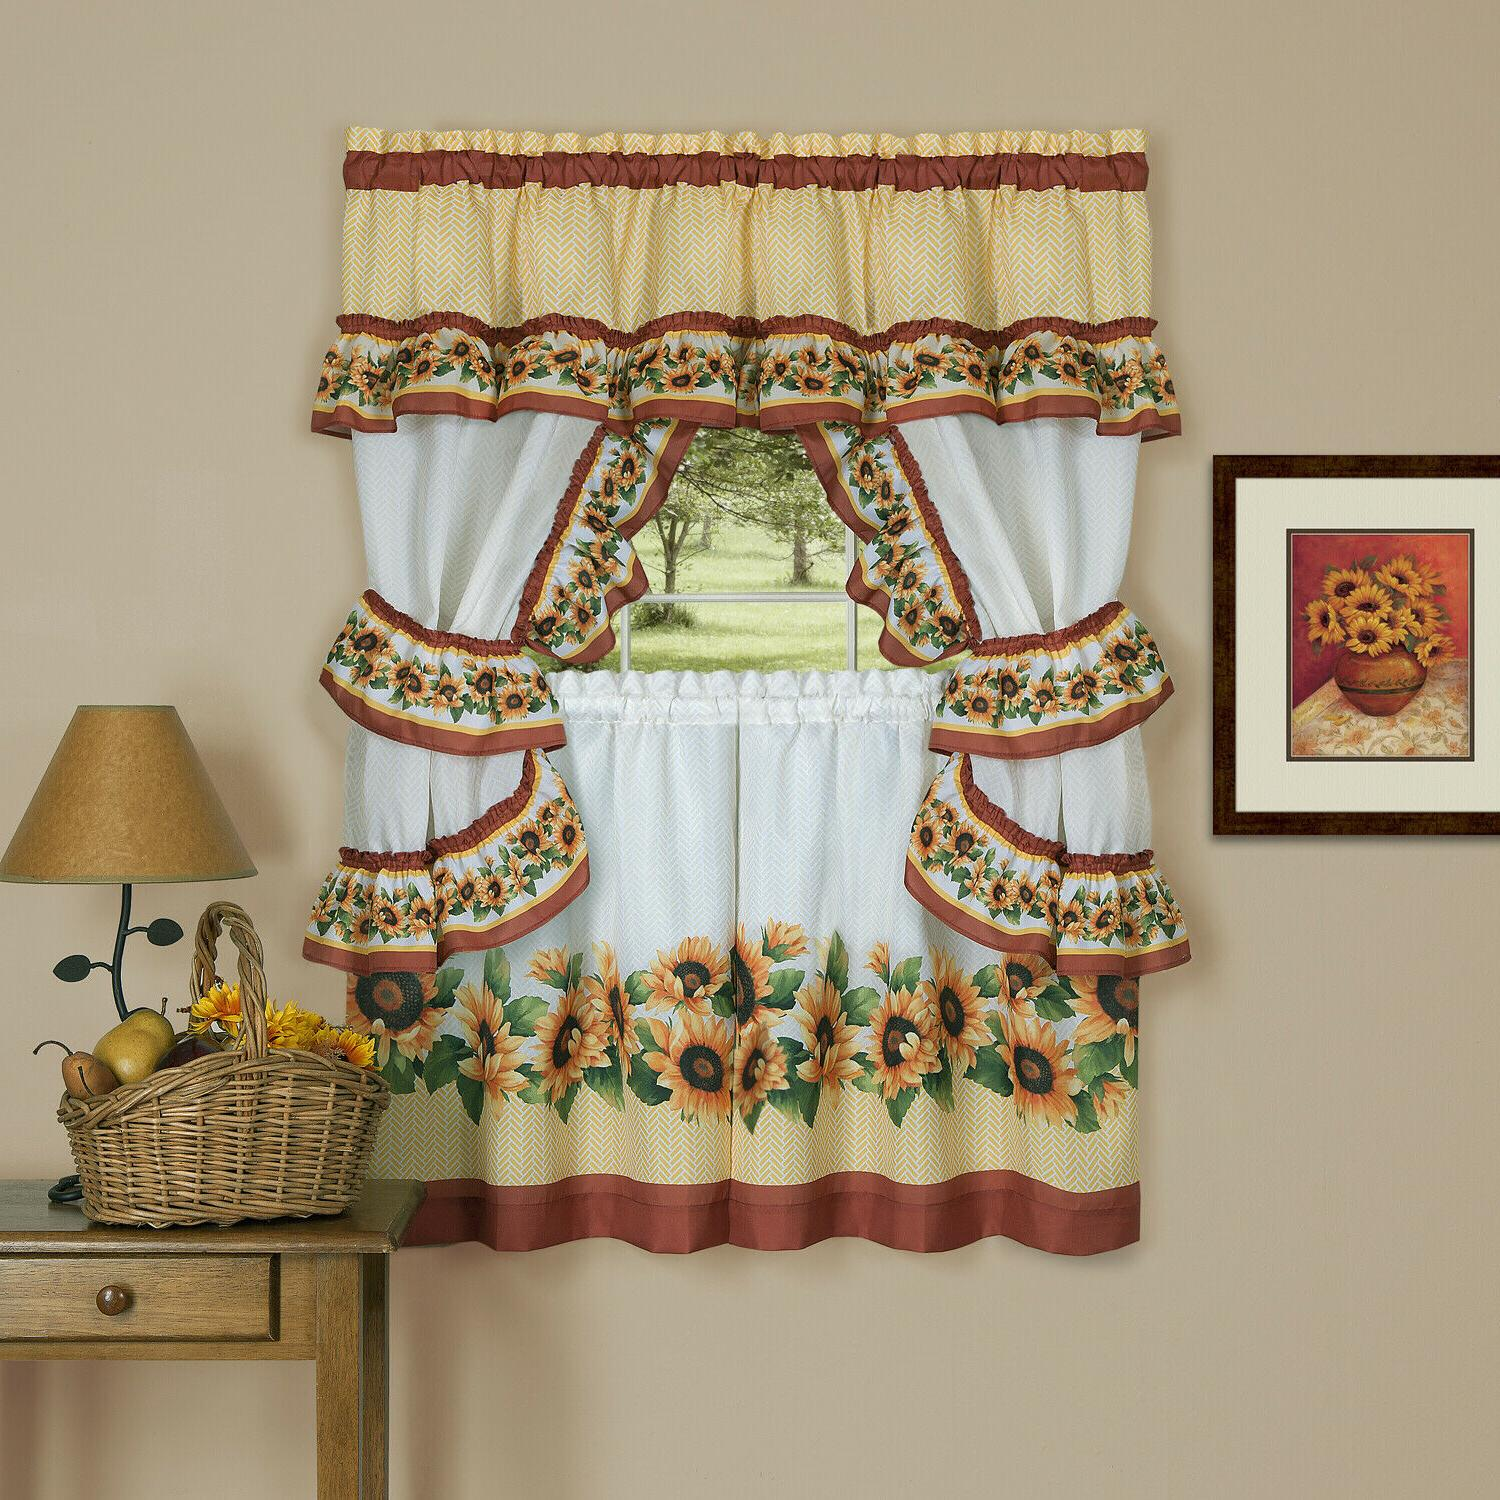 Chevron Sunflower Complete Cottage Kitchen Curtain Set by Go